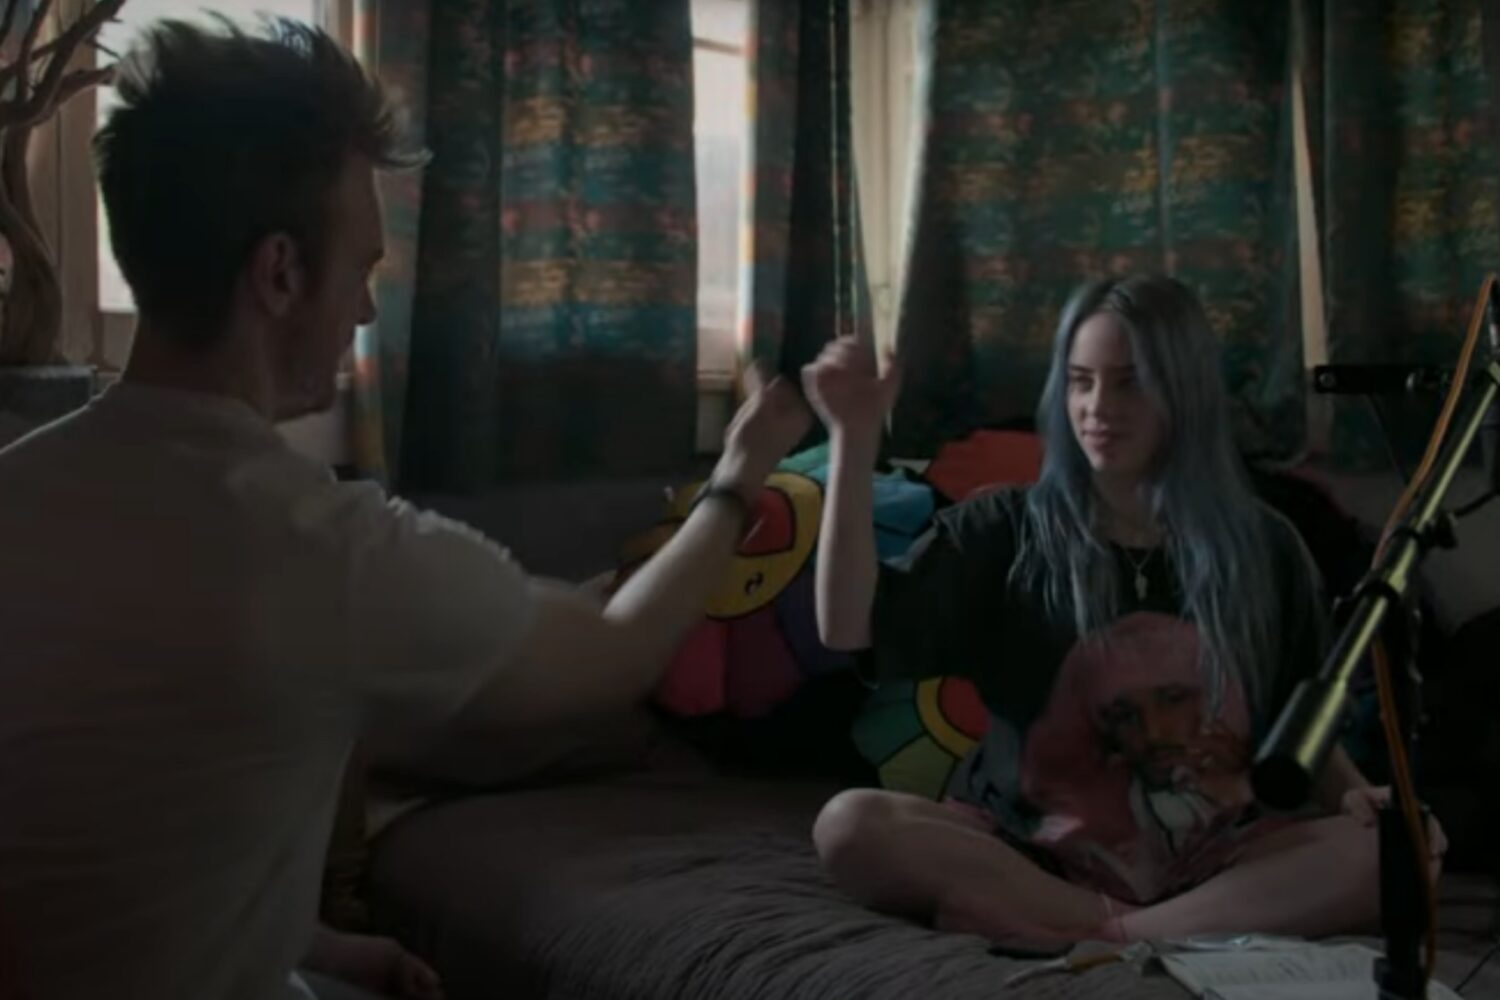 Billie Eilish unveils 'The World's A Little Blurry' trailer